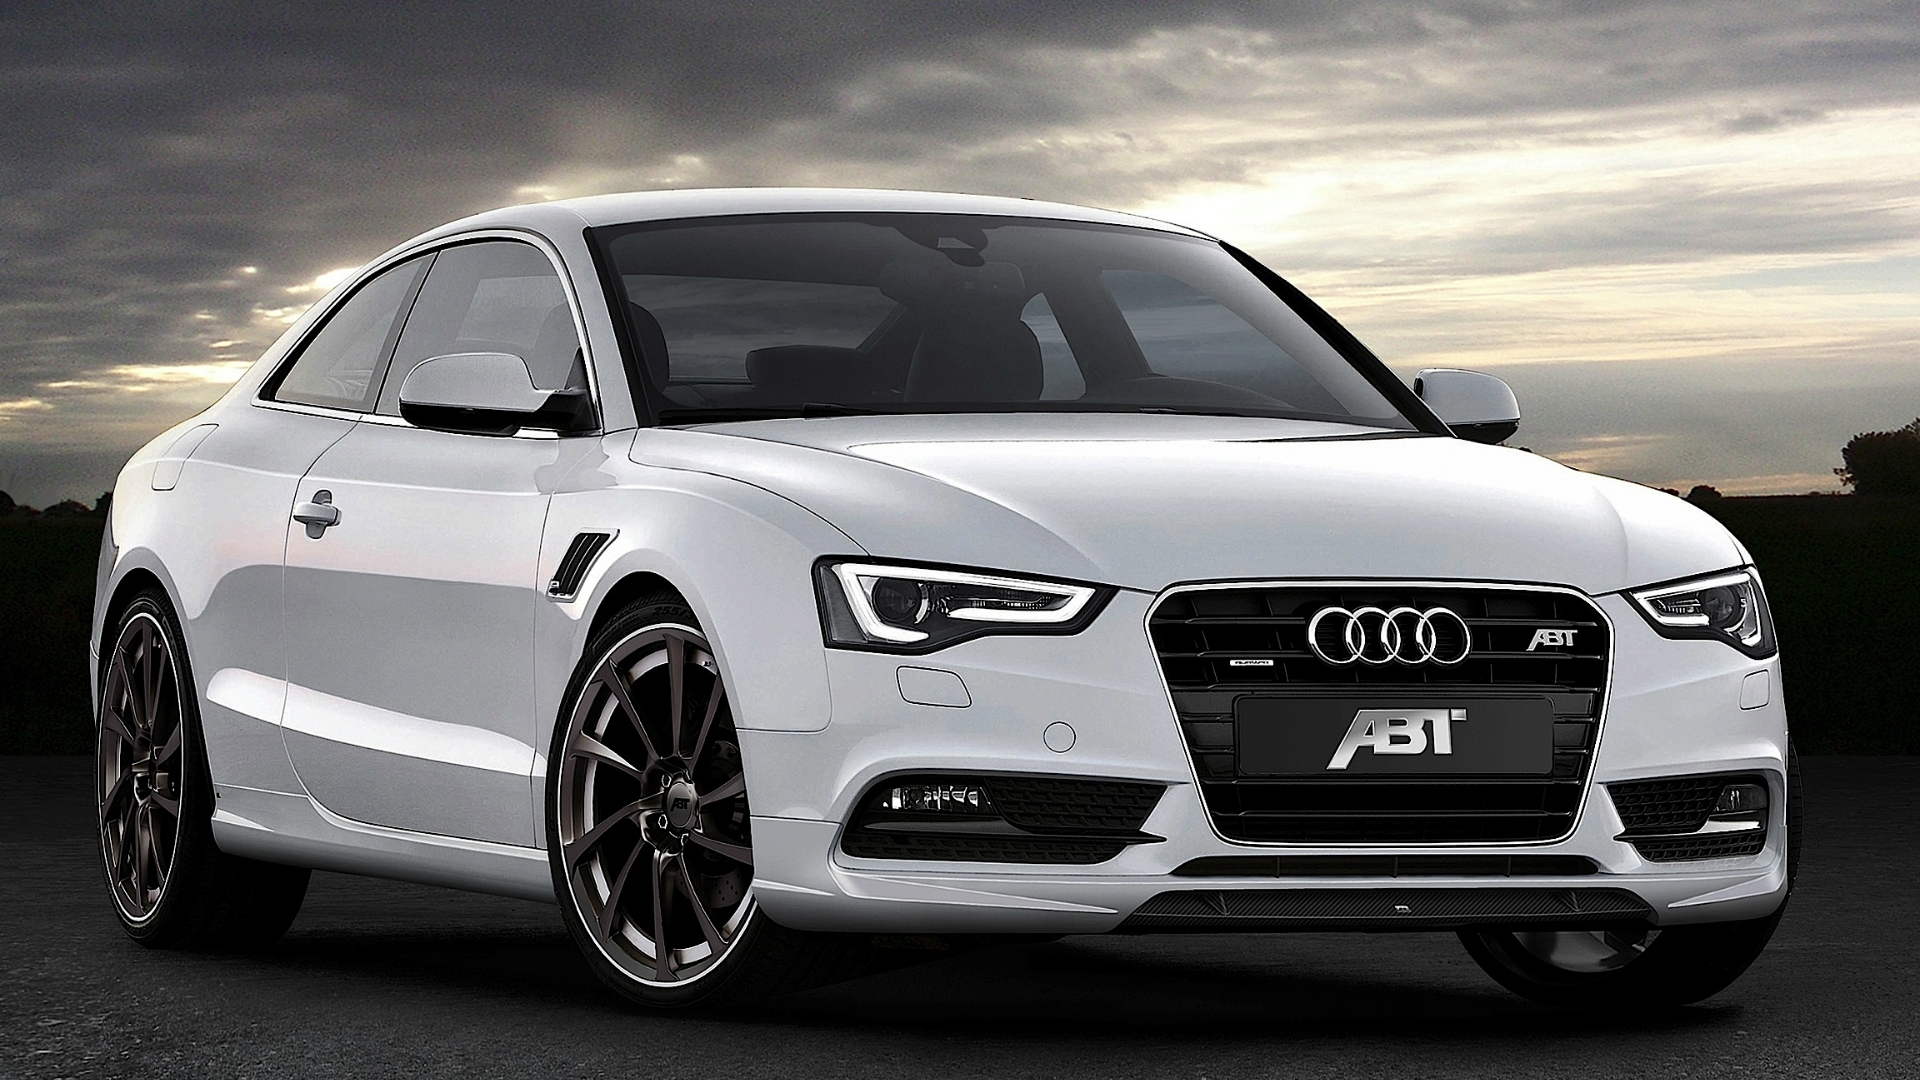 White Audi Front Look 176.85 Kb